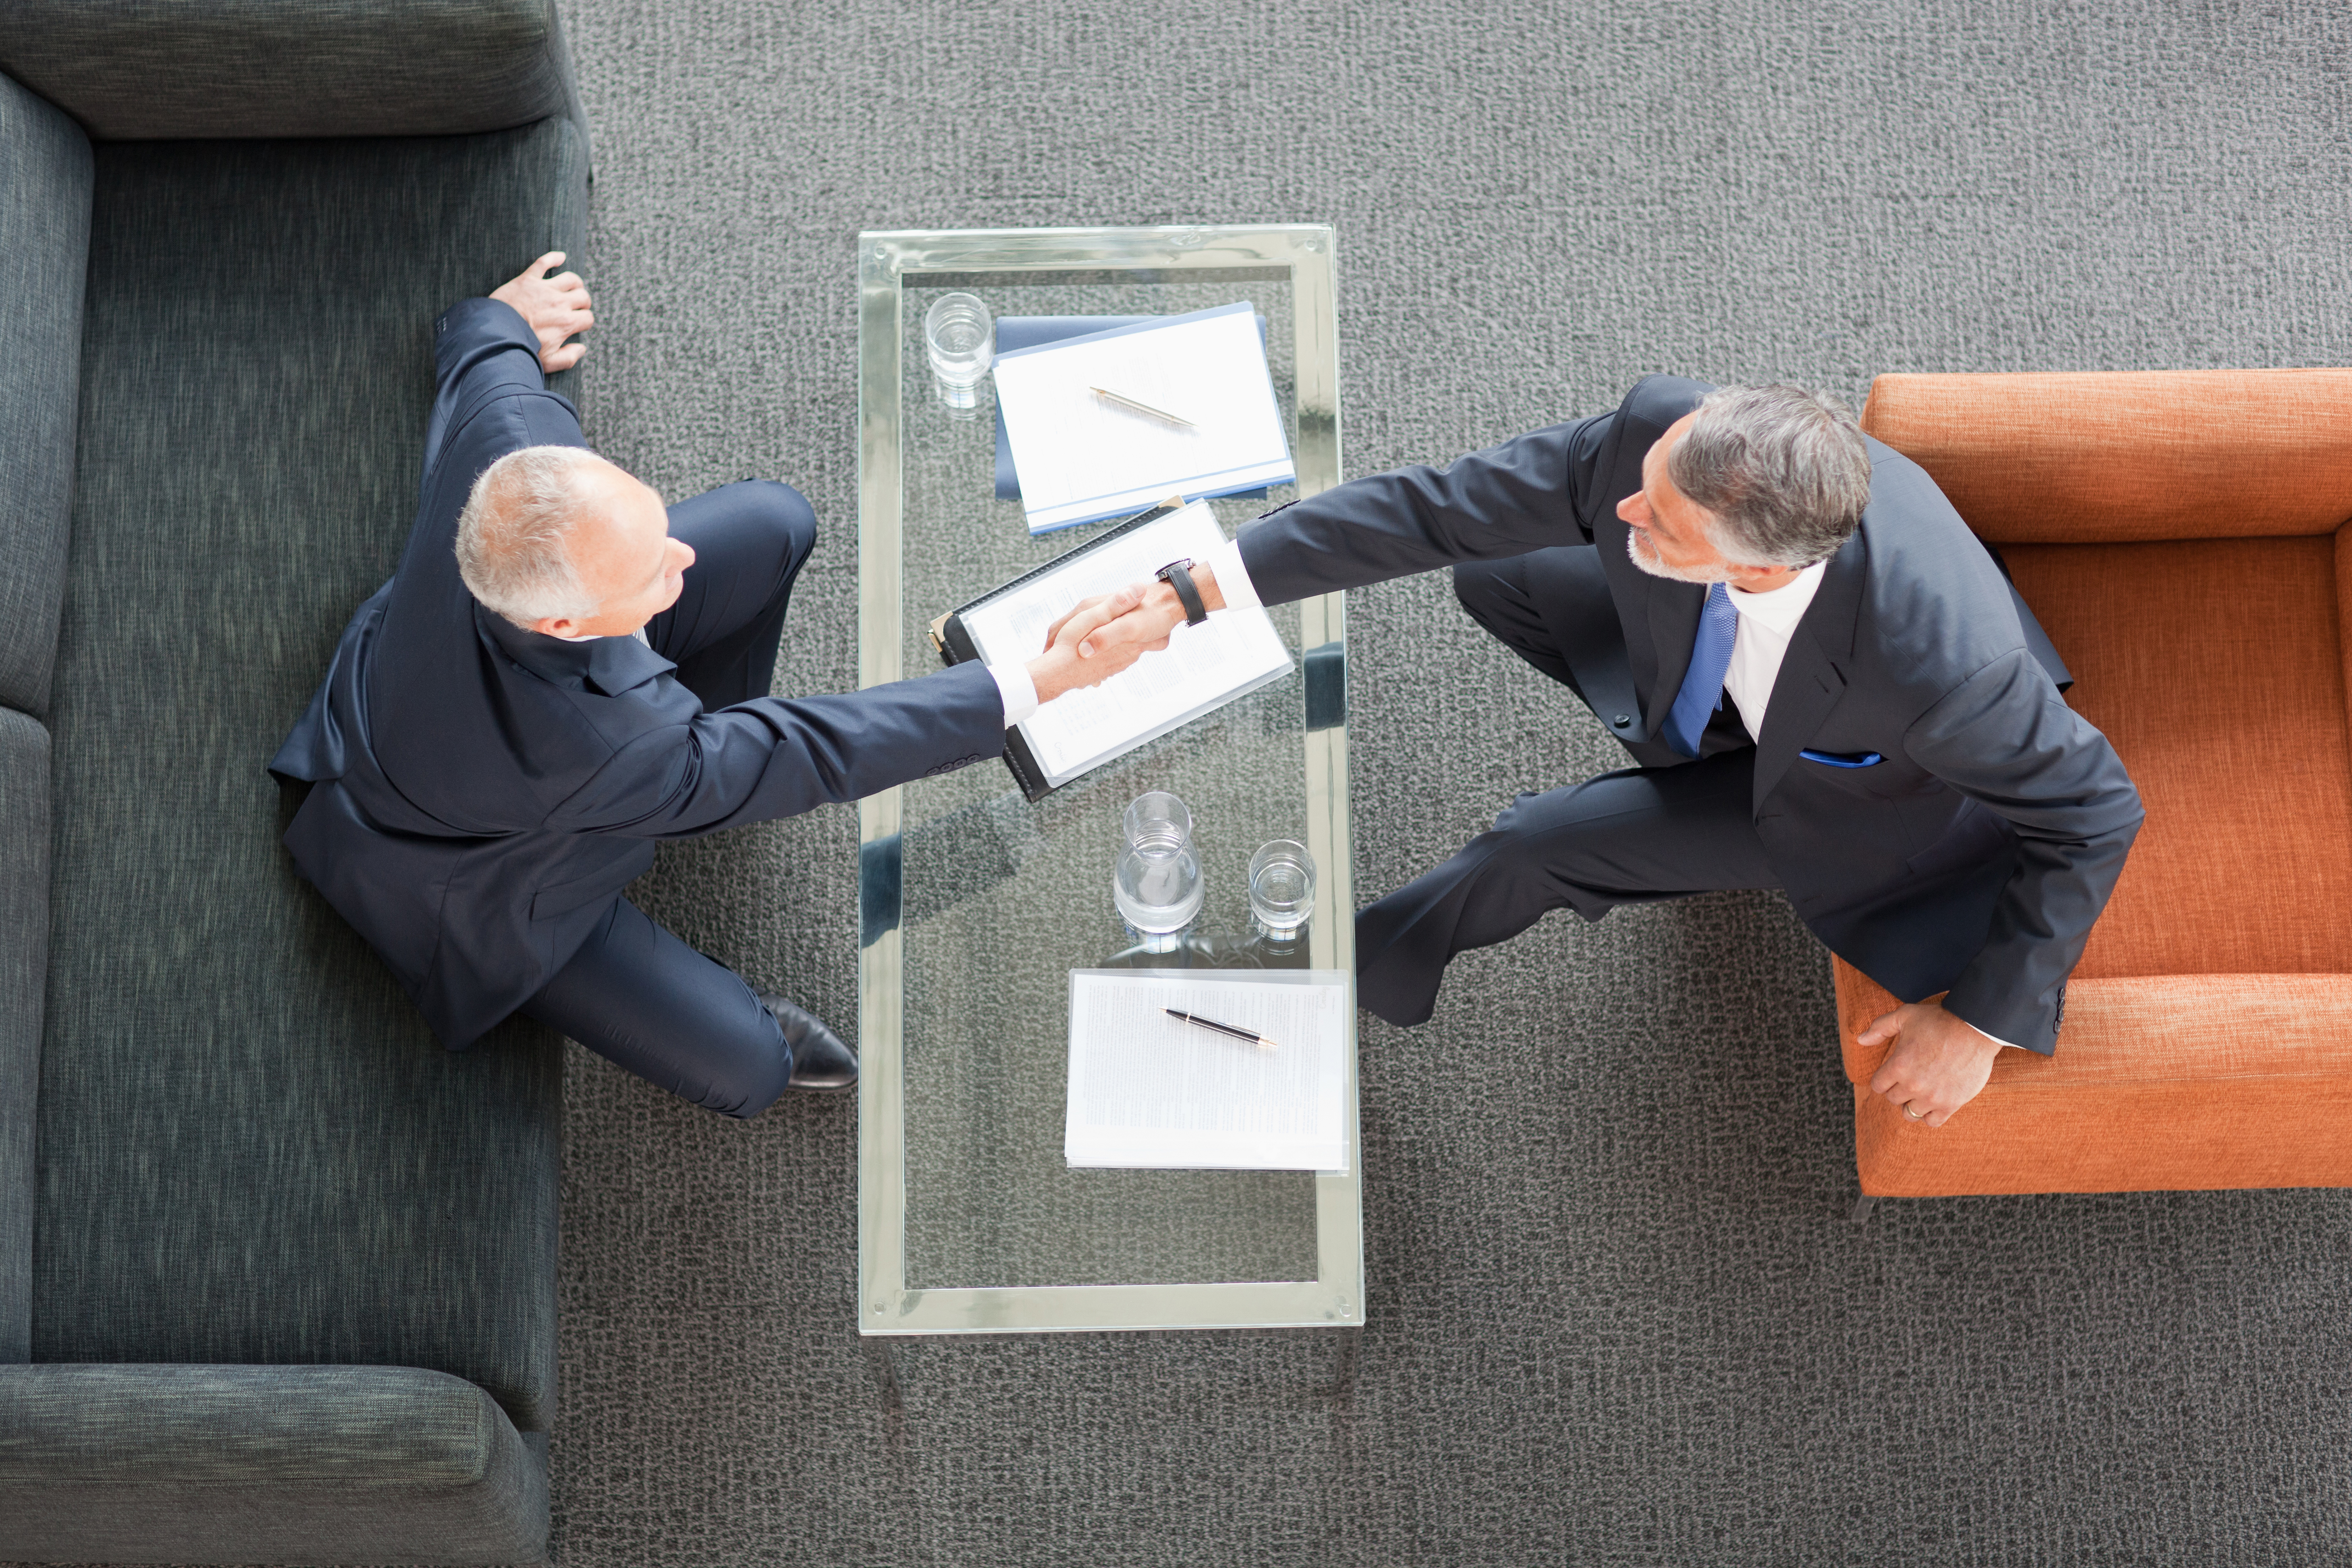 Businessmen shaking hands across coffee table in lobby